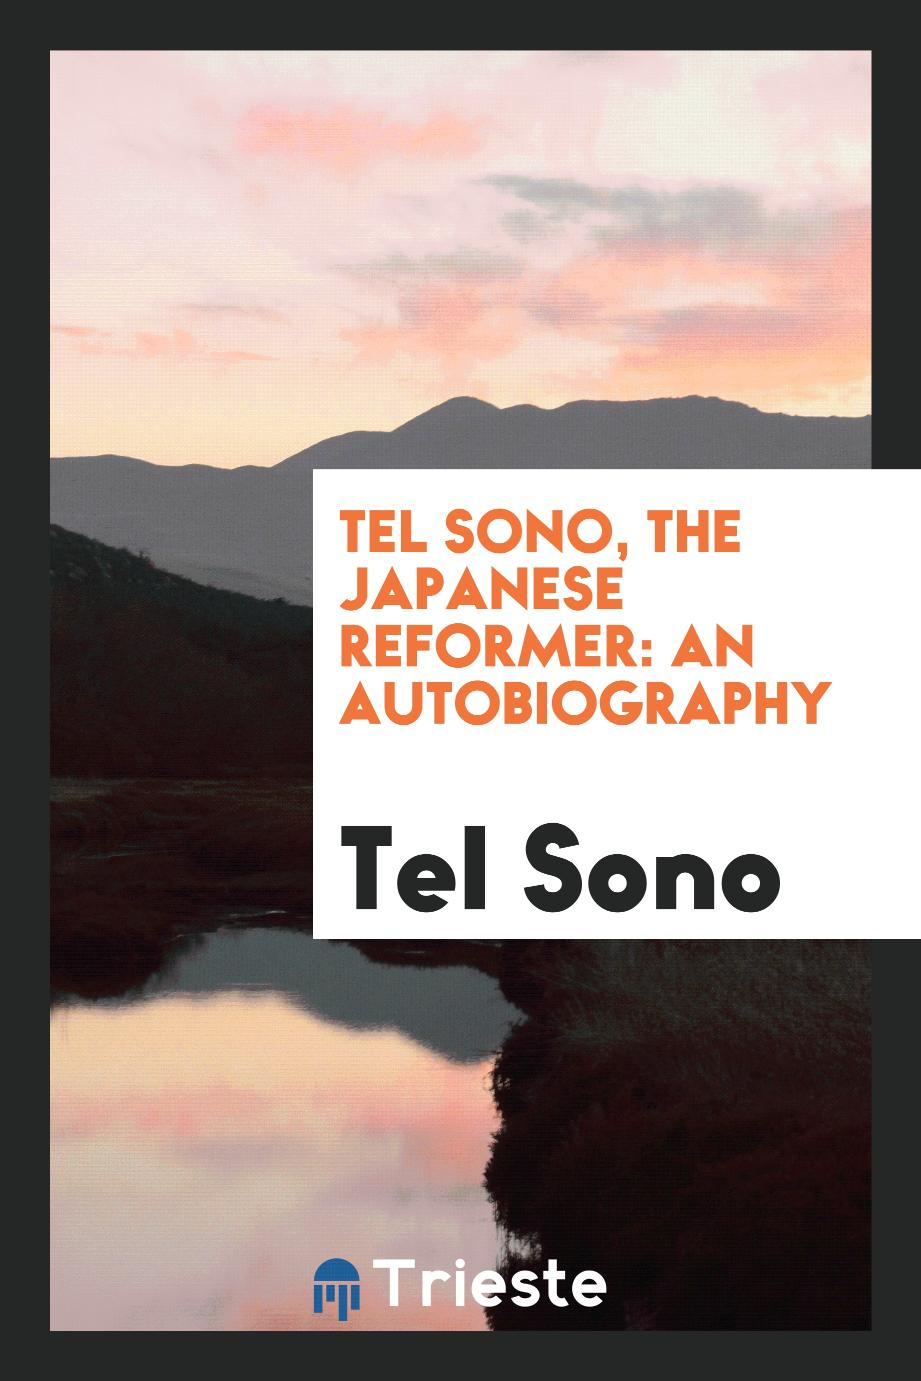 Tel Sono, the Japanese Reformer: An Autobiography